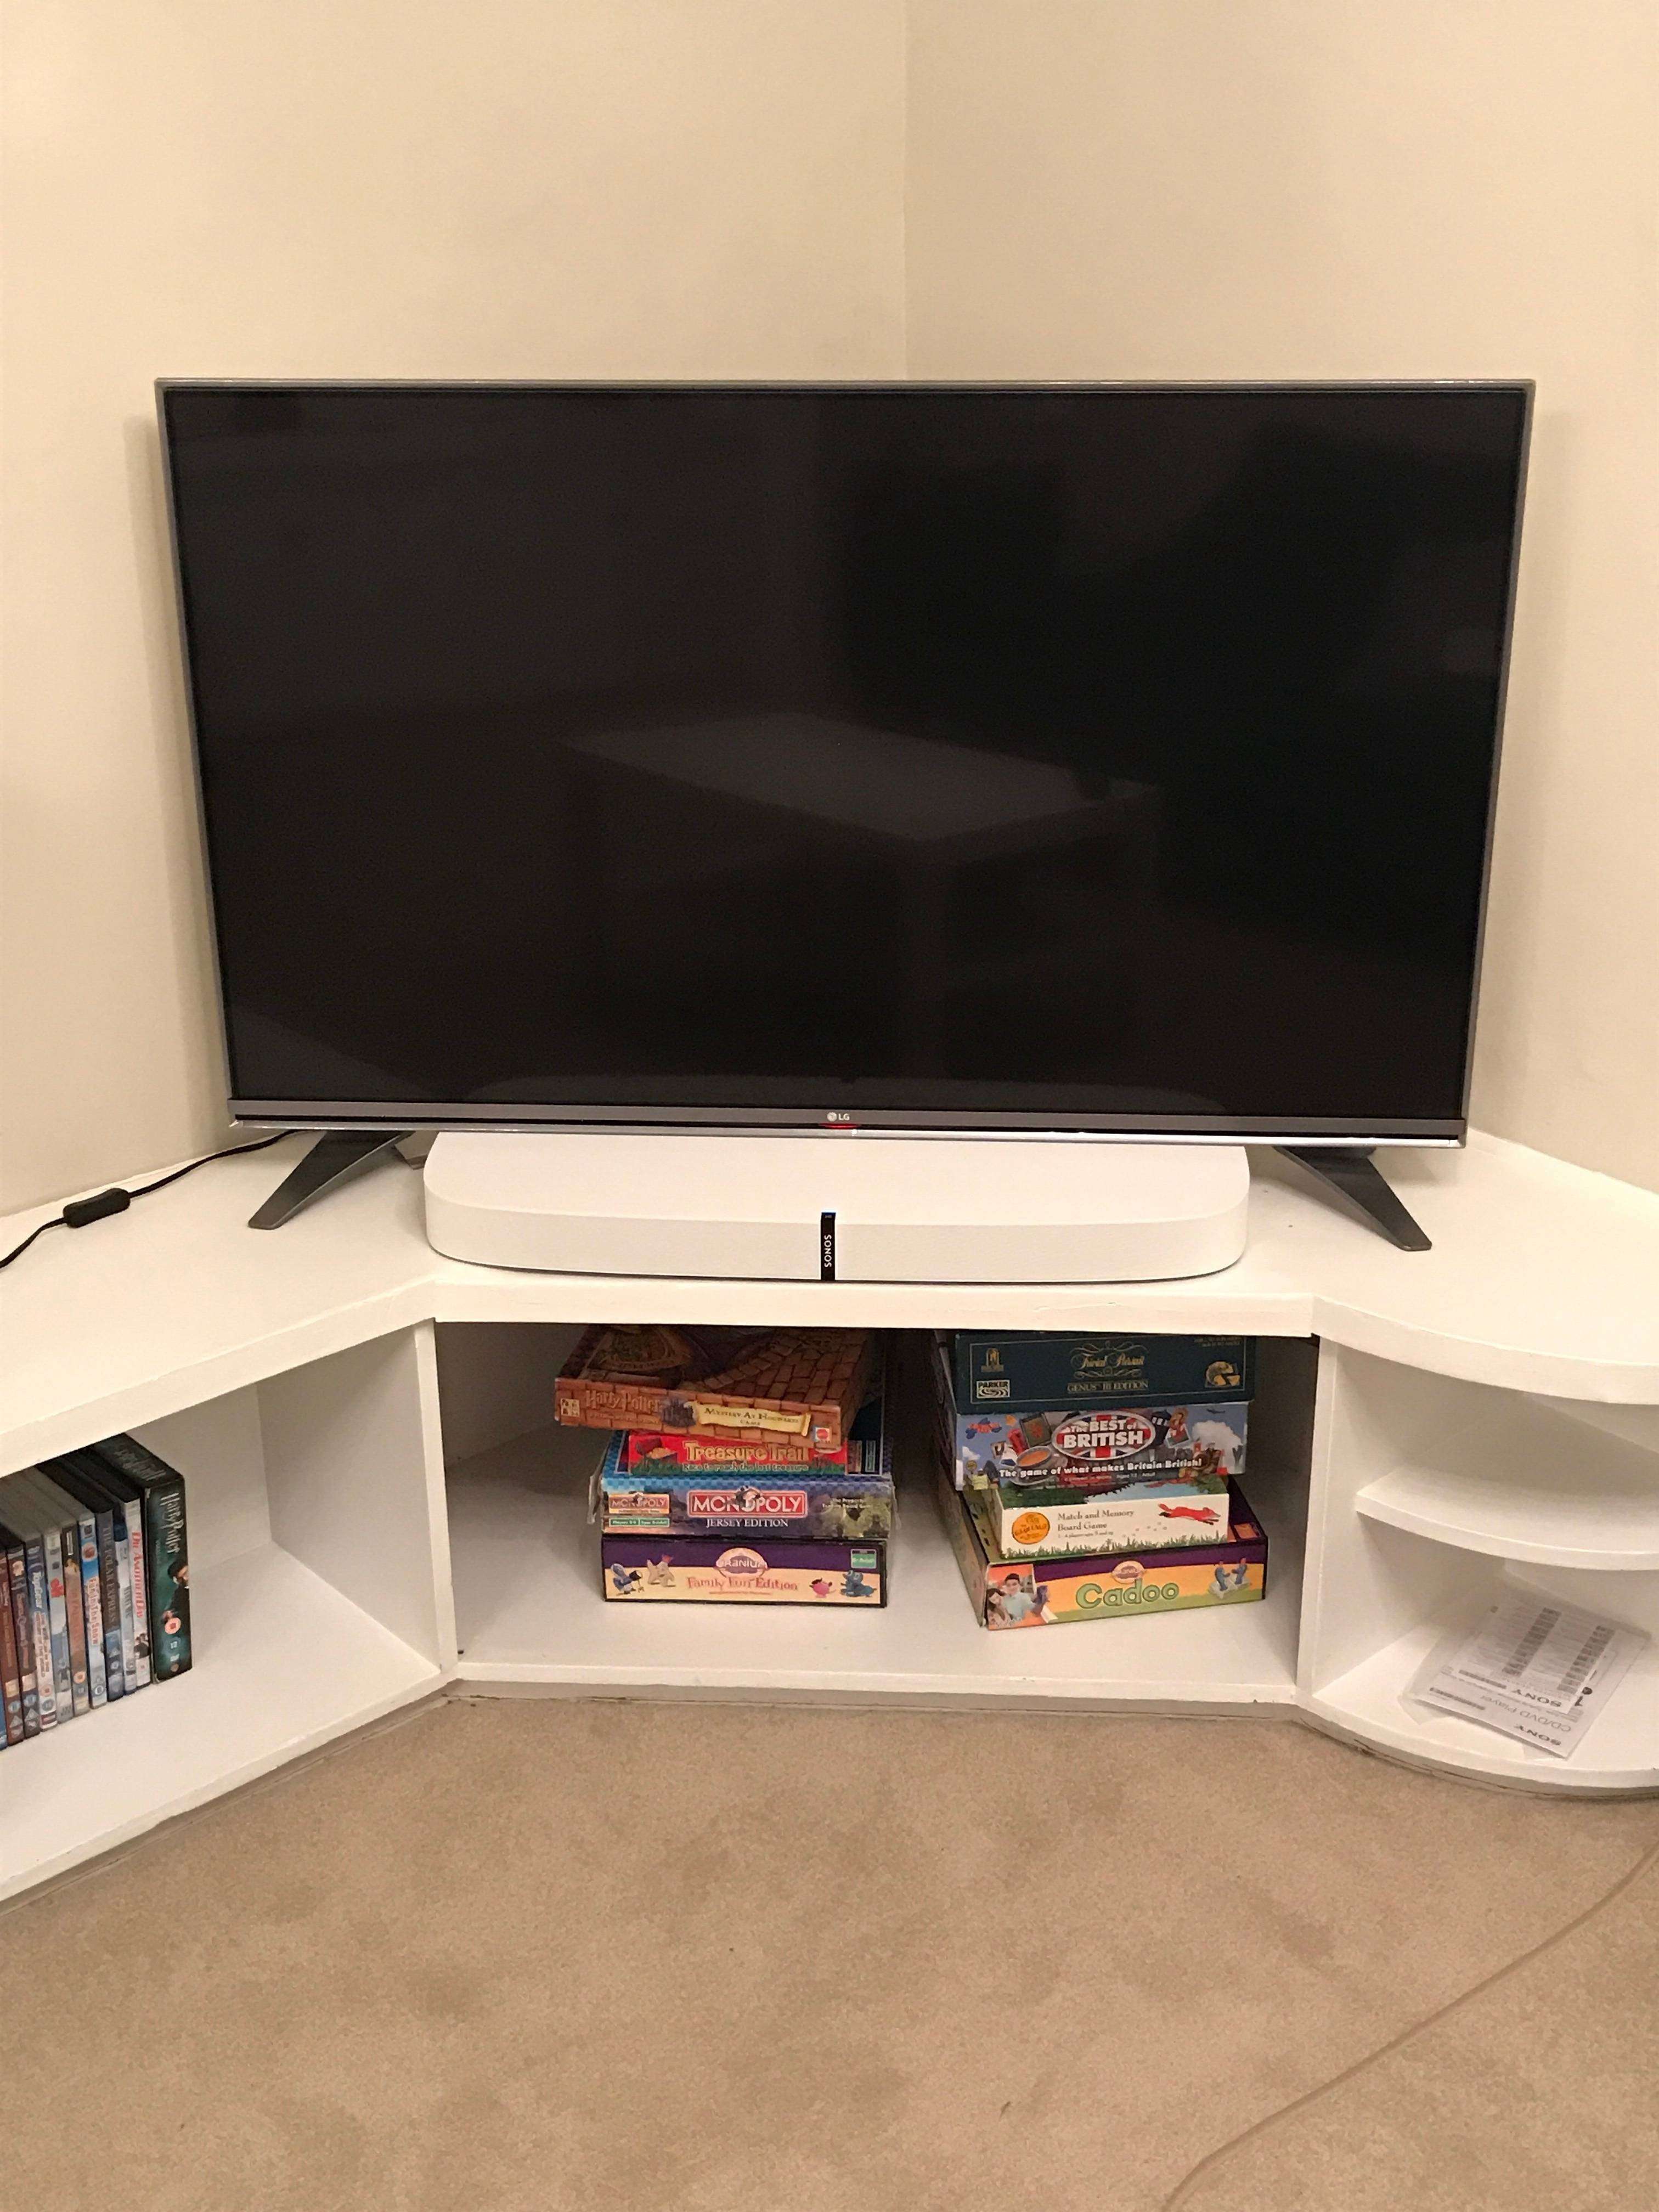 Photos Of Playbase On Tv With Outer Stands? | Sonos Community In Sonos Tv Stands (View 11 of 15)